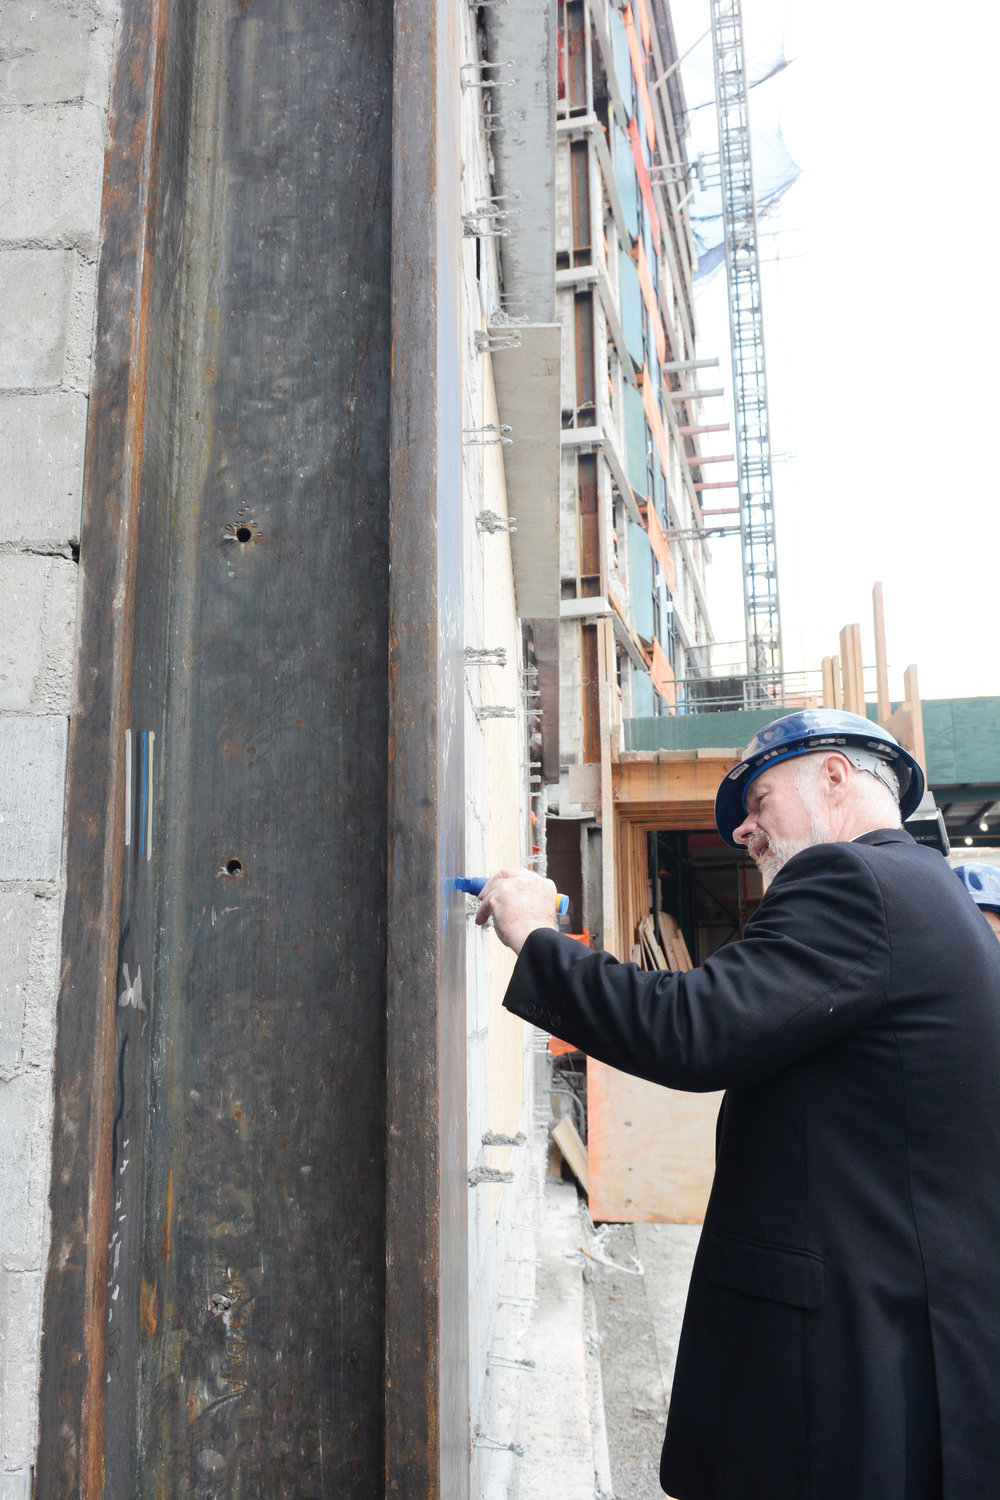 Msgr. Kevin Sullivan, executive director for Catholic Charities in the archdiocese, signs a building beam.